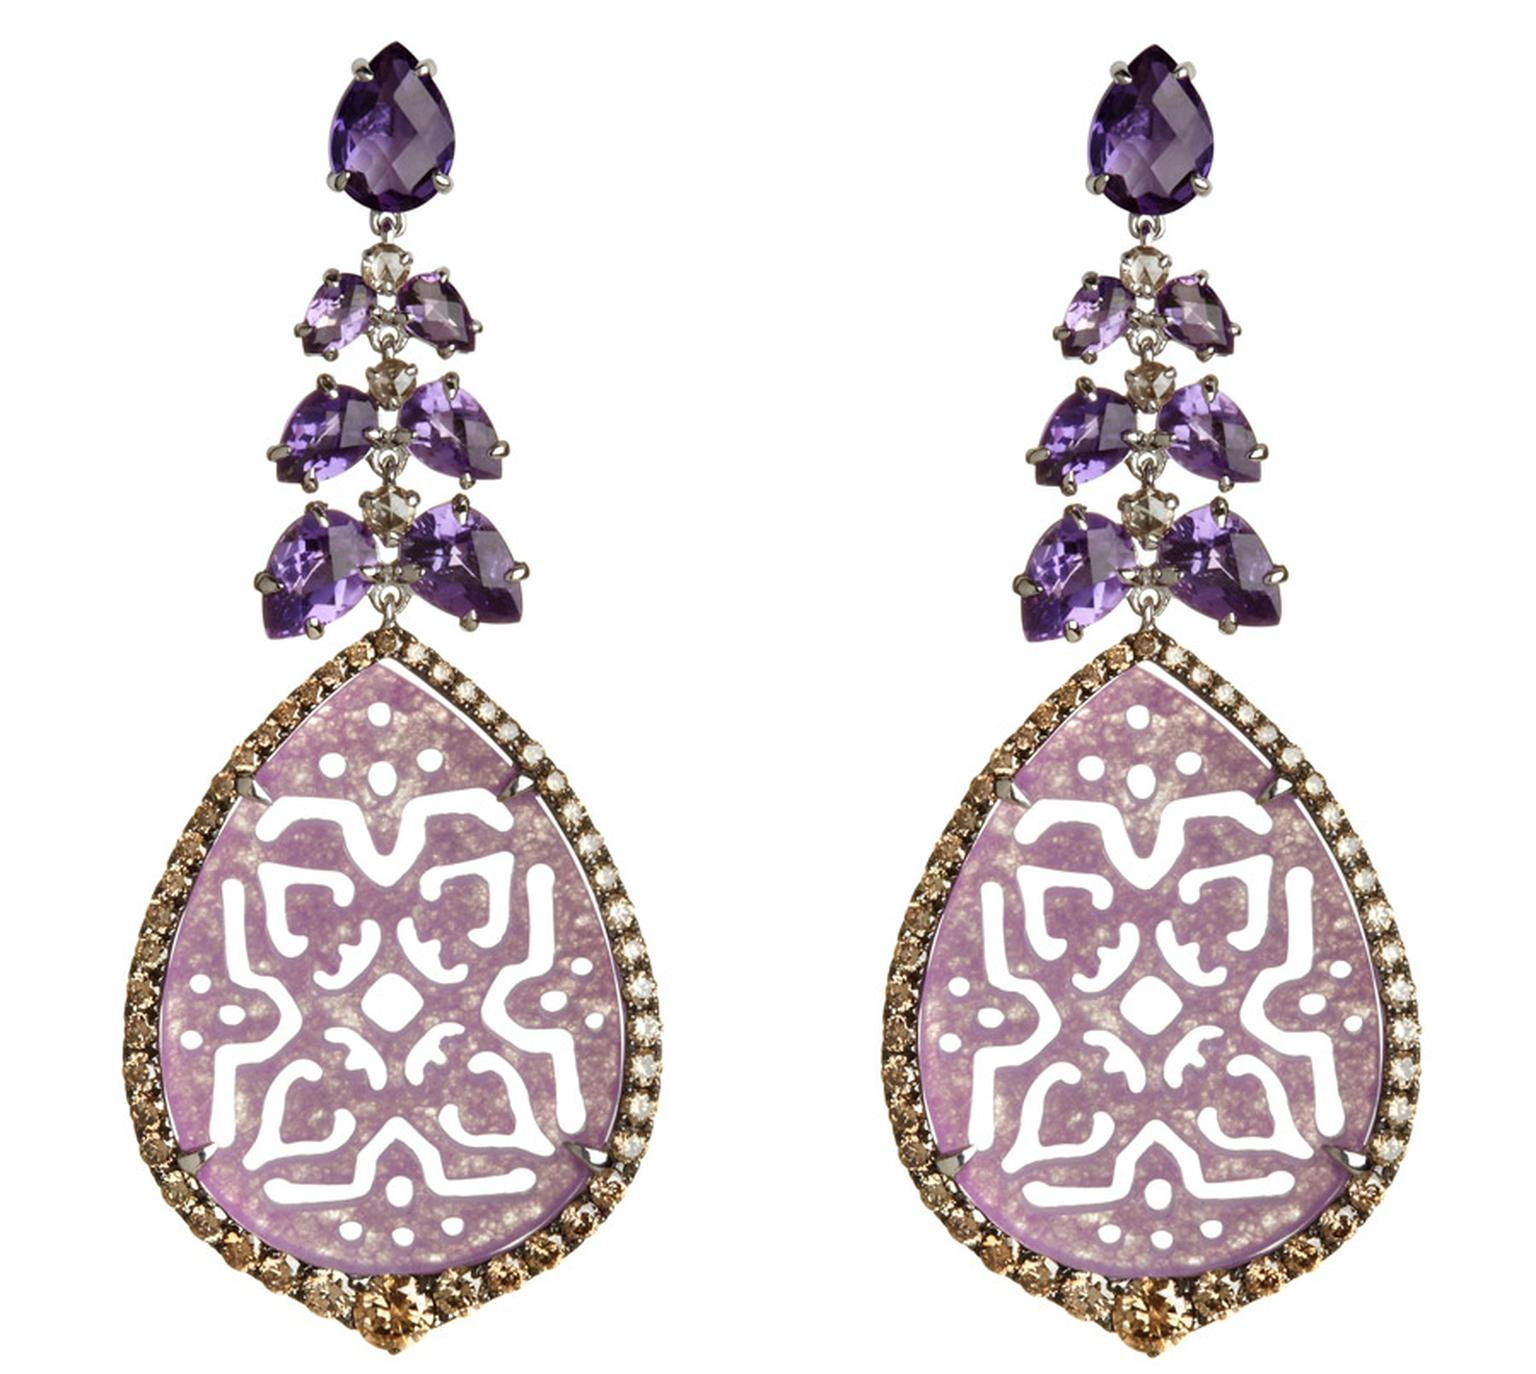 Annoushka-Alhambra-18ct-rose-gold-amethyst-diamond-and-jade-earrings.jpg